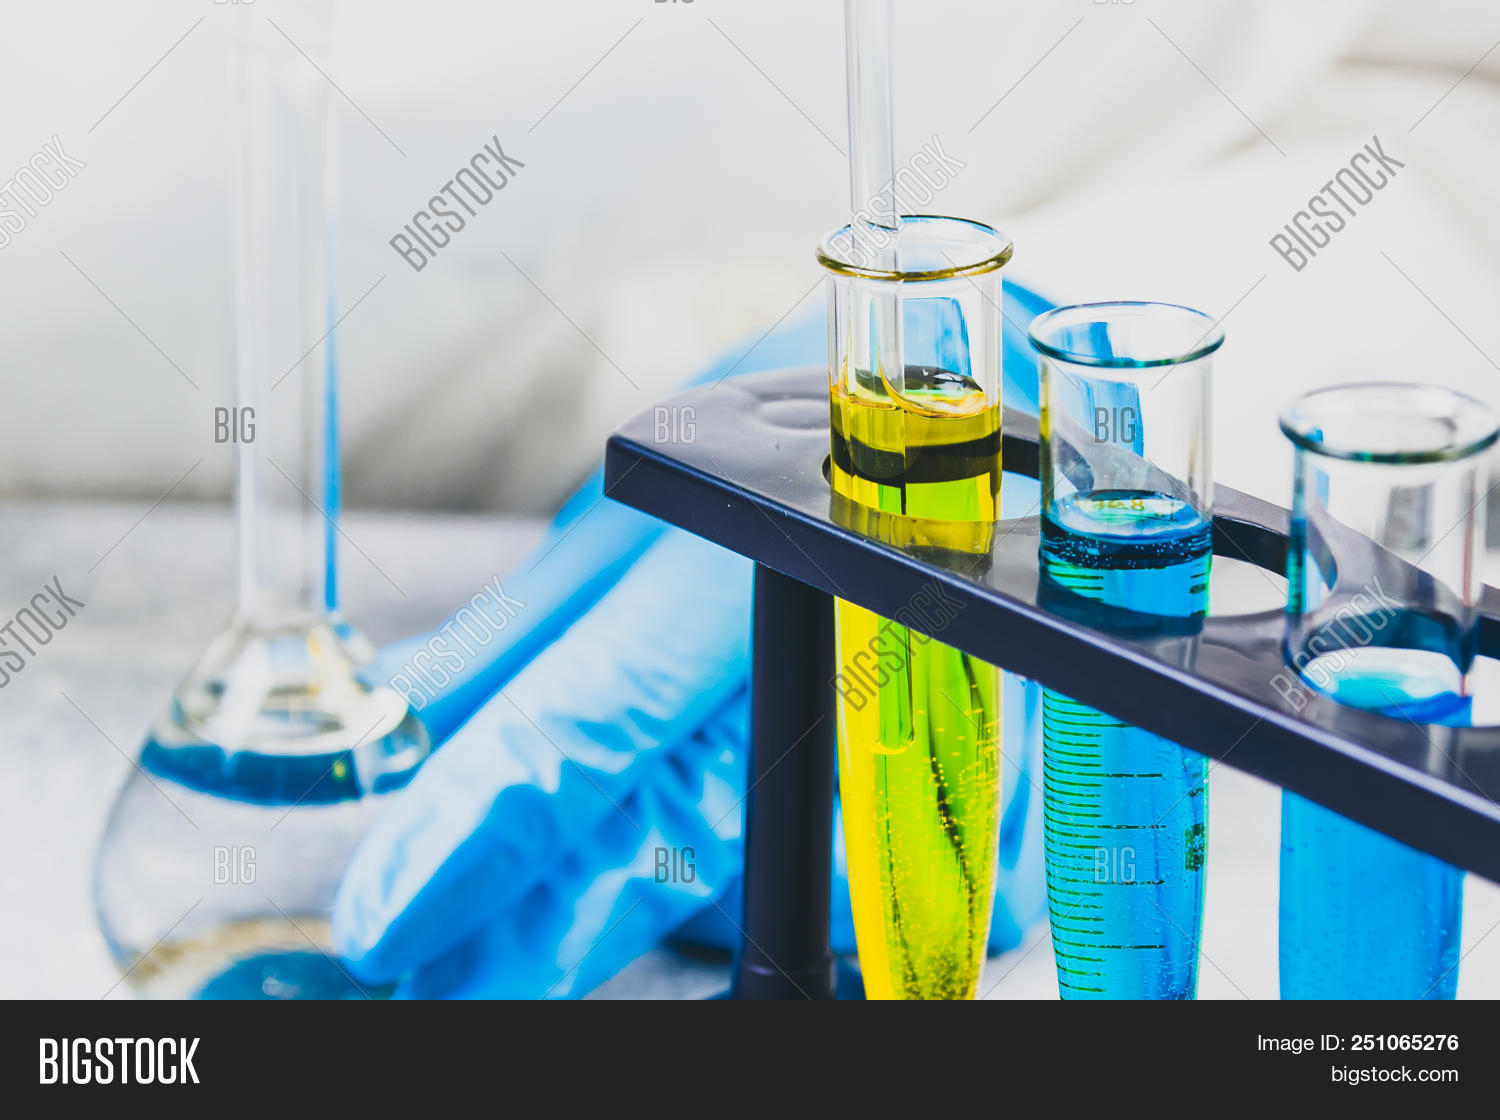 analysis,analyzing,background,biological,biology,biotechnology,blue,bottle,care,chemical,chemistry,discovery,doctor,drop,education,equipment,experiment,glass,grow,health,healthcare,hospital,industry,instrument,lab,laboratory,leaf,liquid,medical,medicine,microbiology,nature,people,person,pharmaceutical,pharmacy,plant,professional,reagents,research,sample,science,scientific,scientist,selection,study,technology,test,tube,water